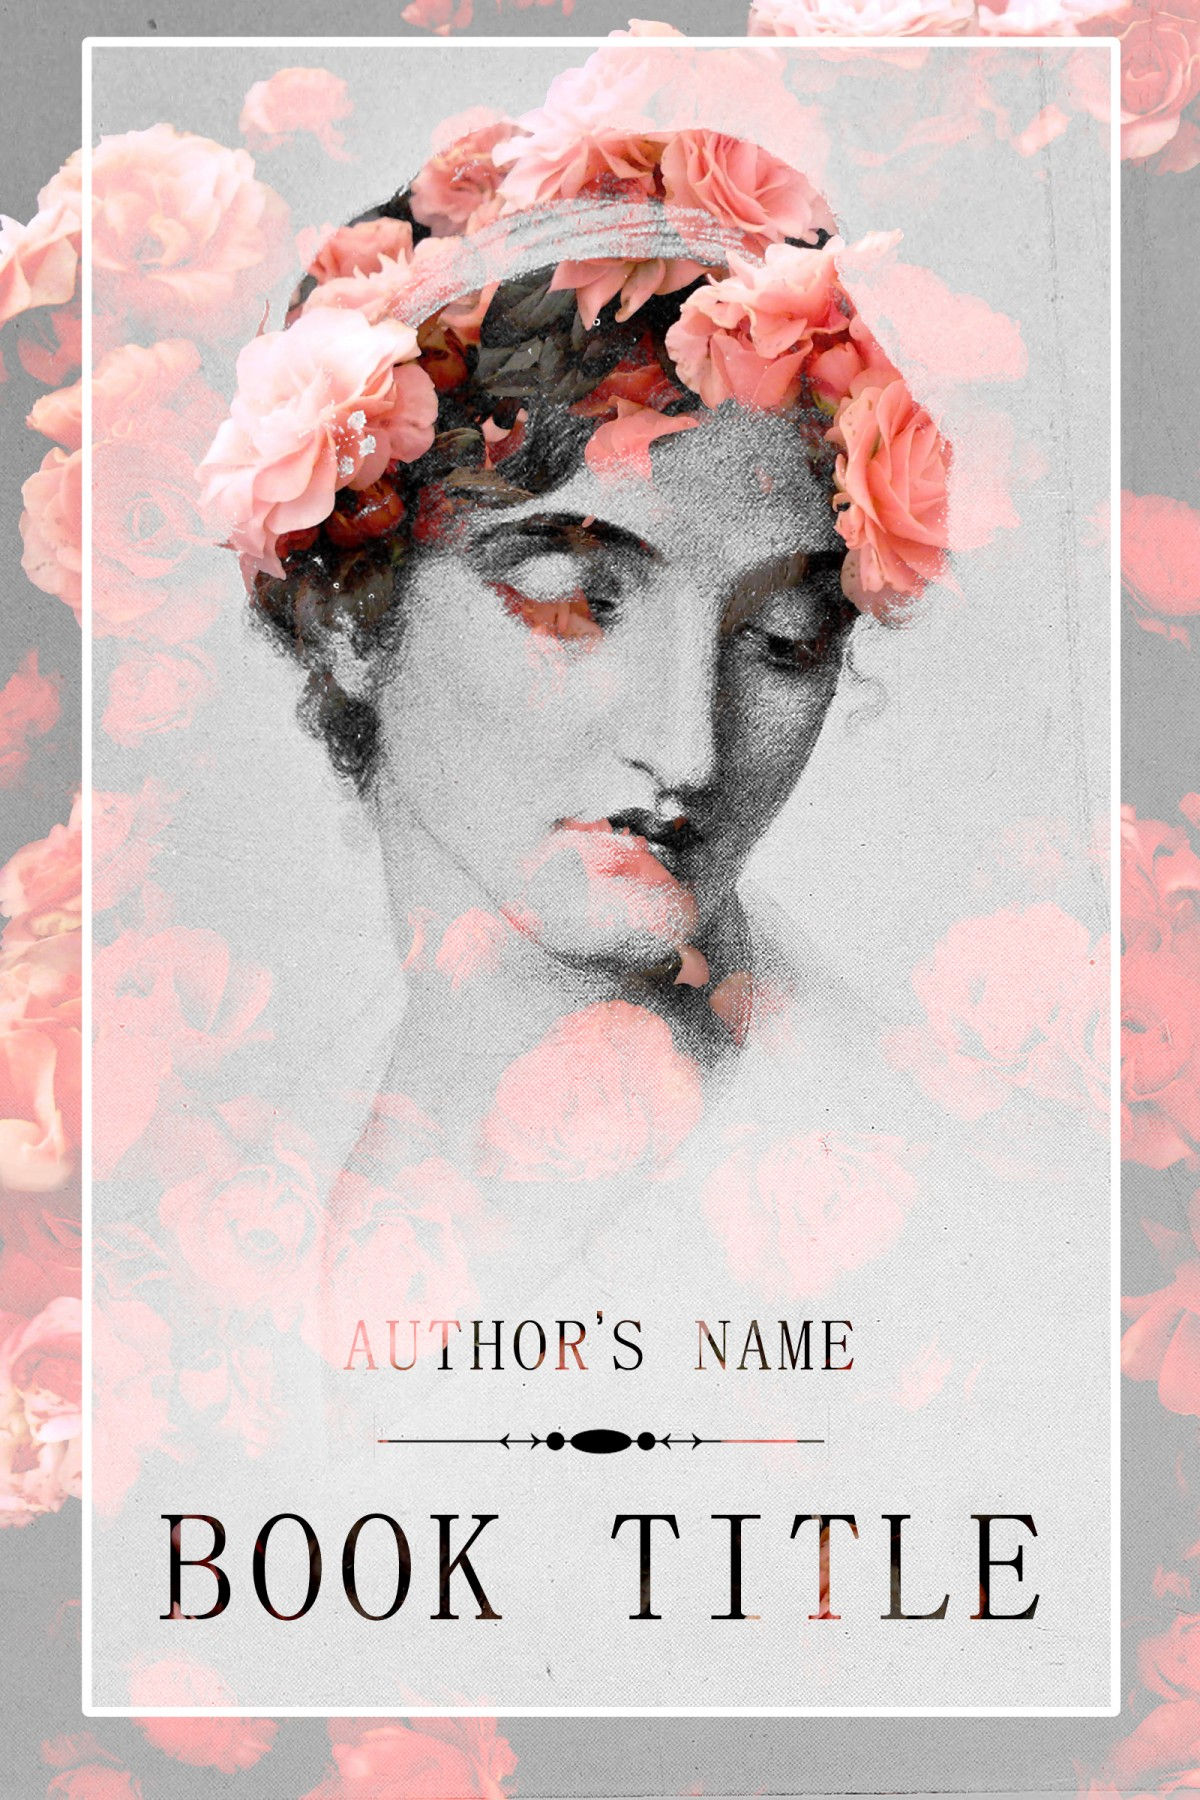 Book Cover Forros S : Lady of roses the book cover designer